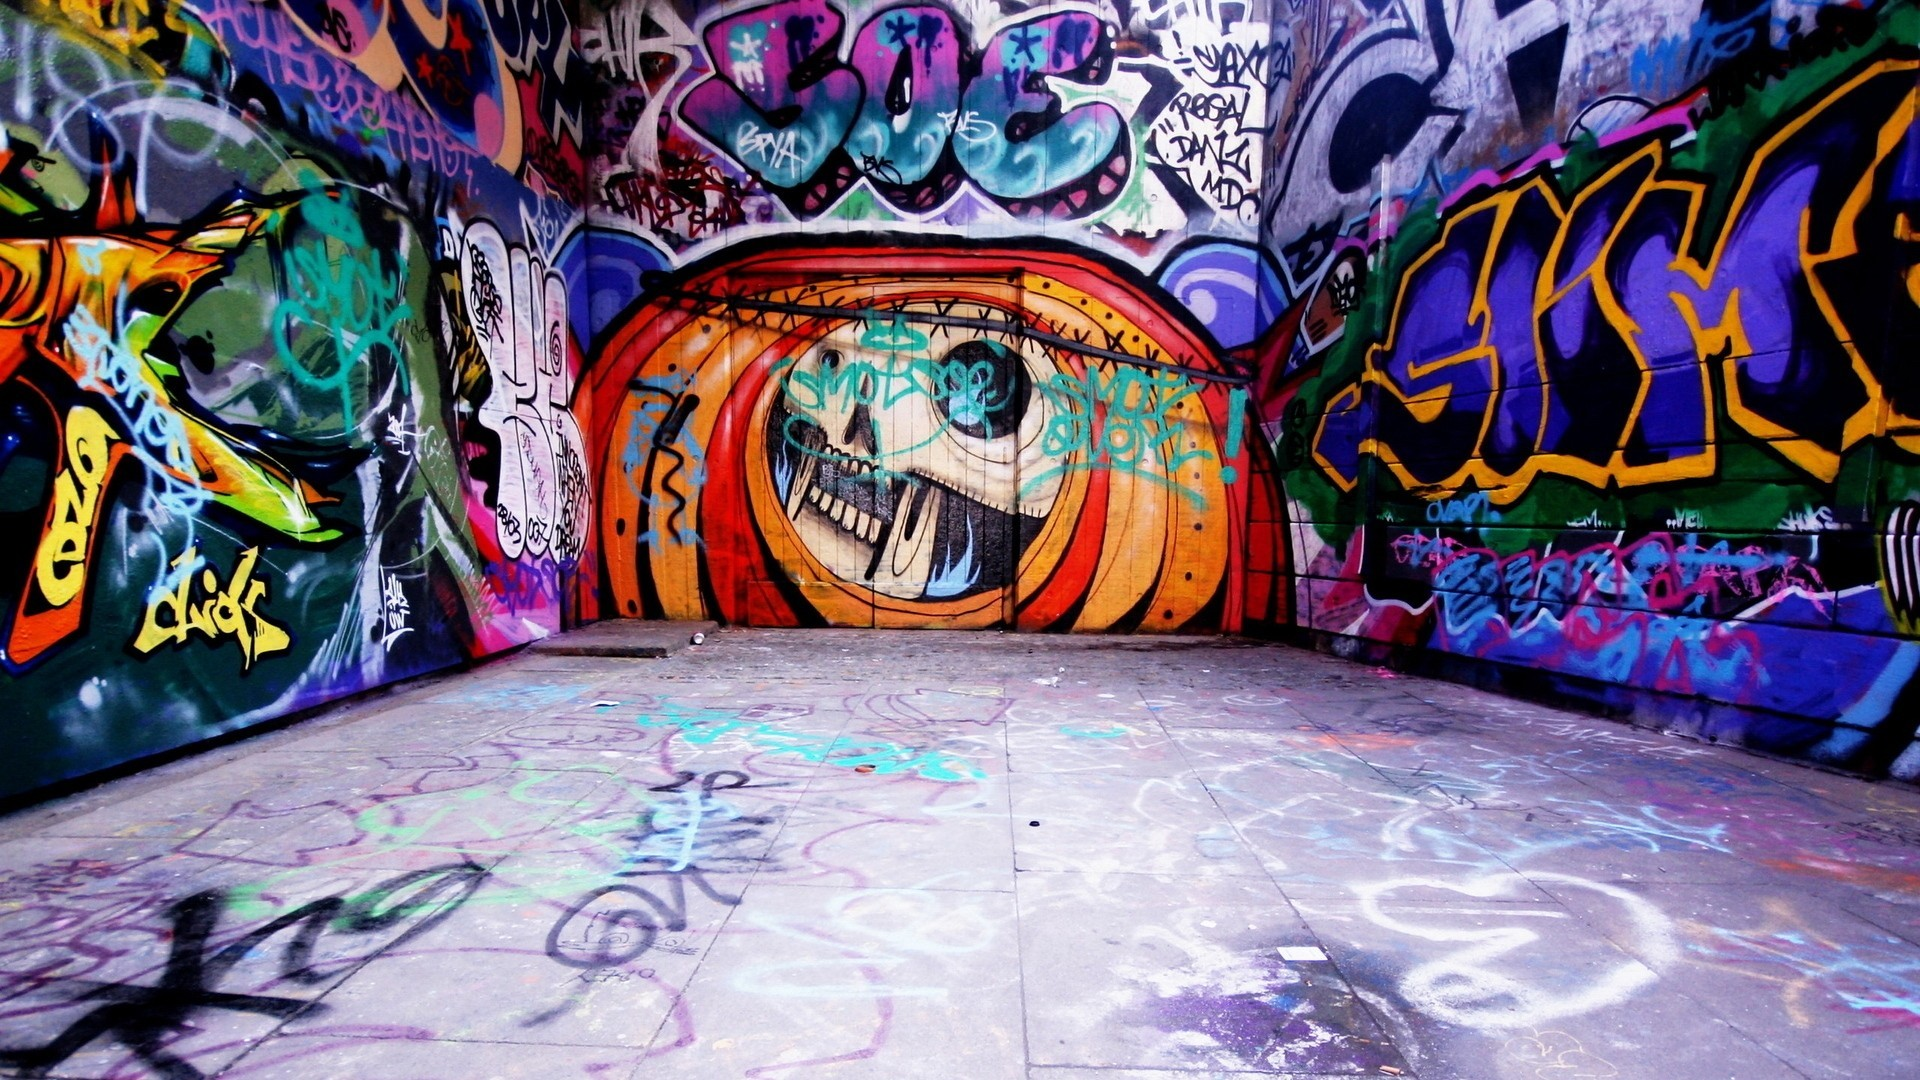 Graffiti Wall Art Wallpaper Allwallpaperin 2829 Pc En